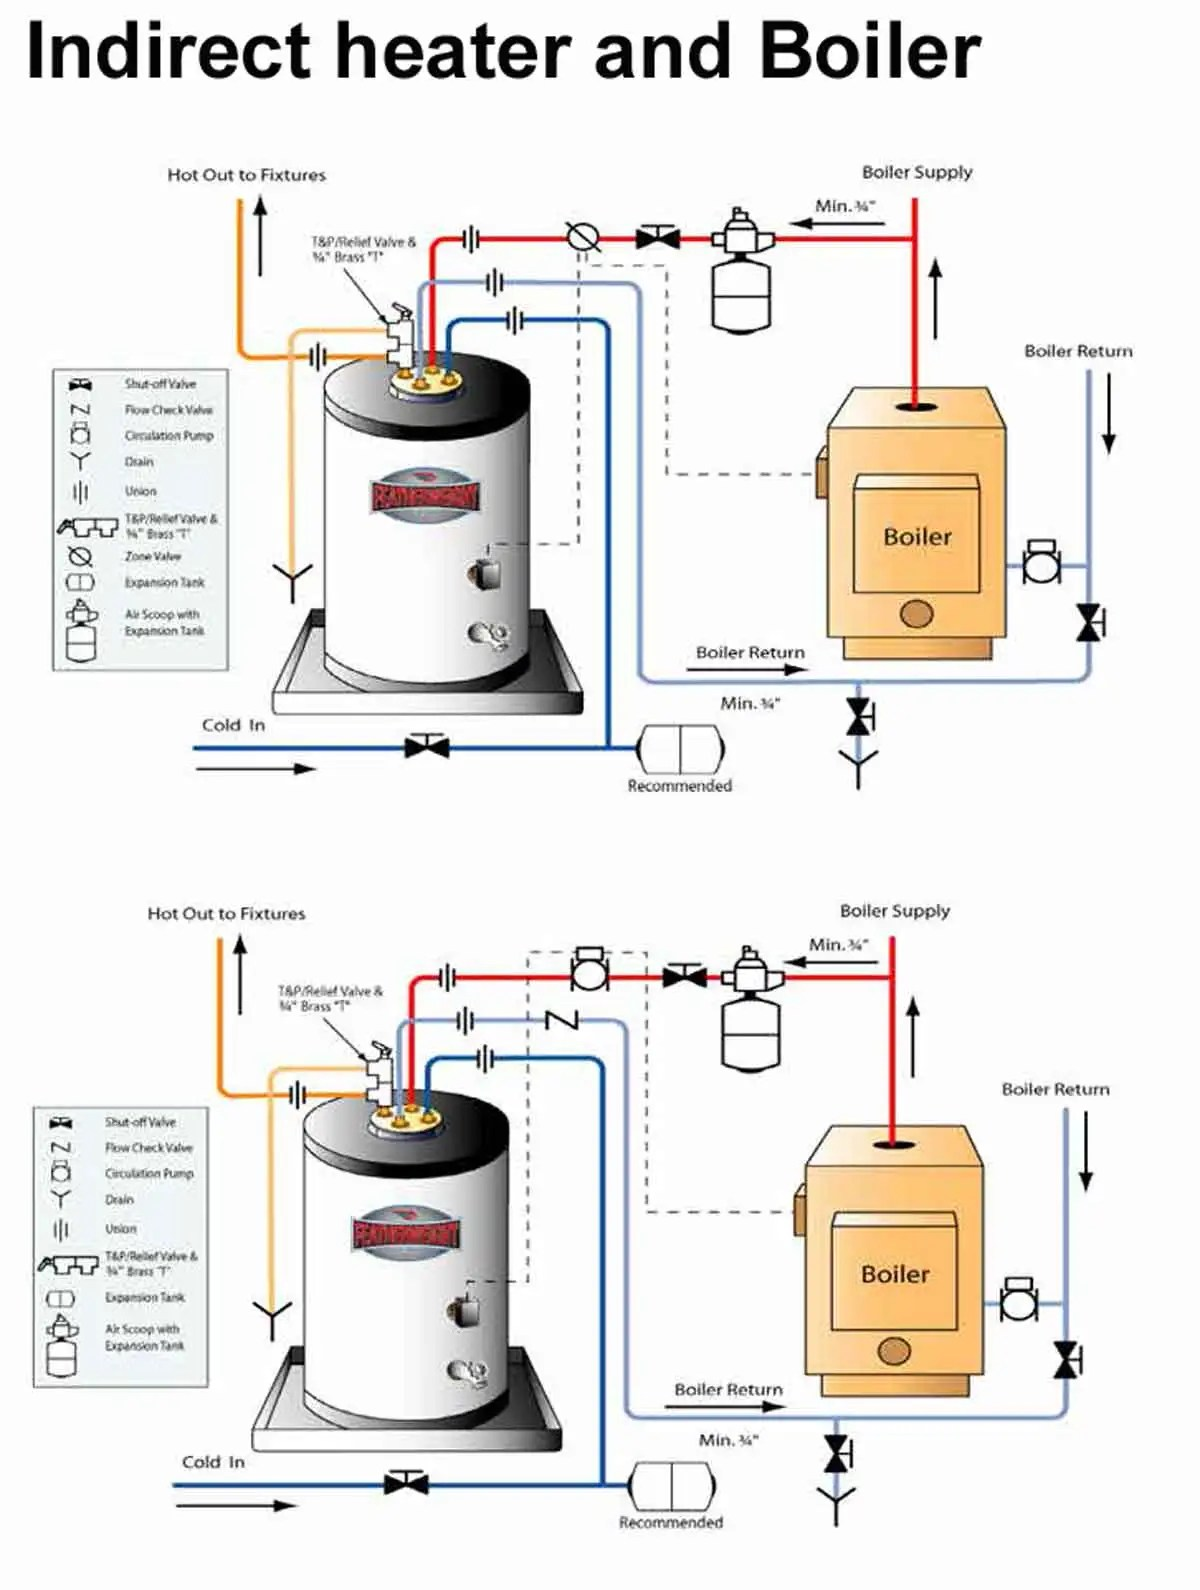 hight resolution of how to install two water heaters fig 1 shows overview of boiler and indirect heater operation